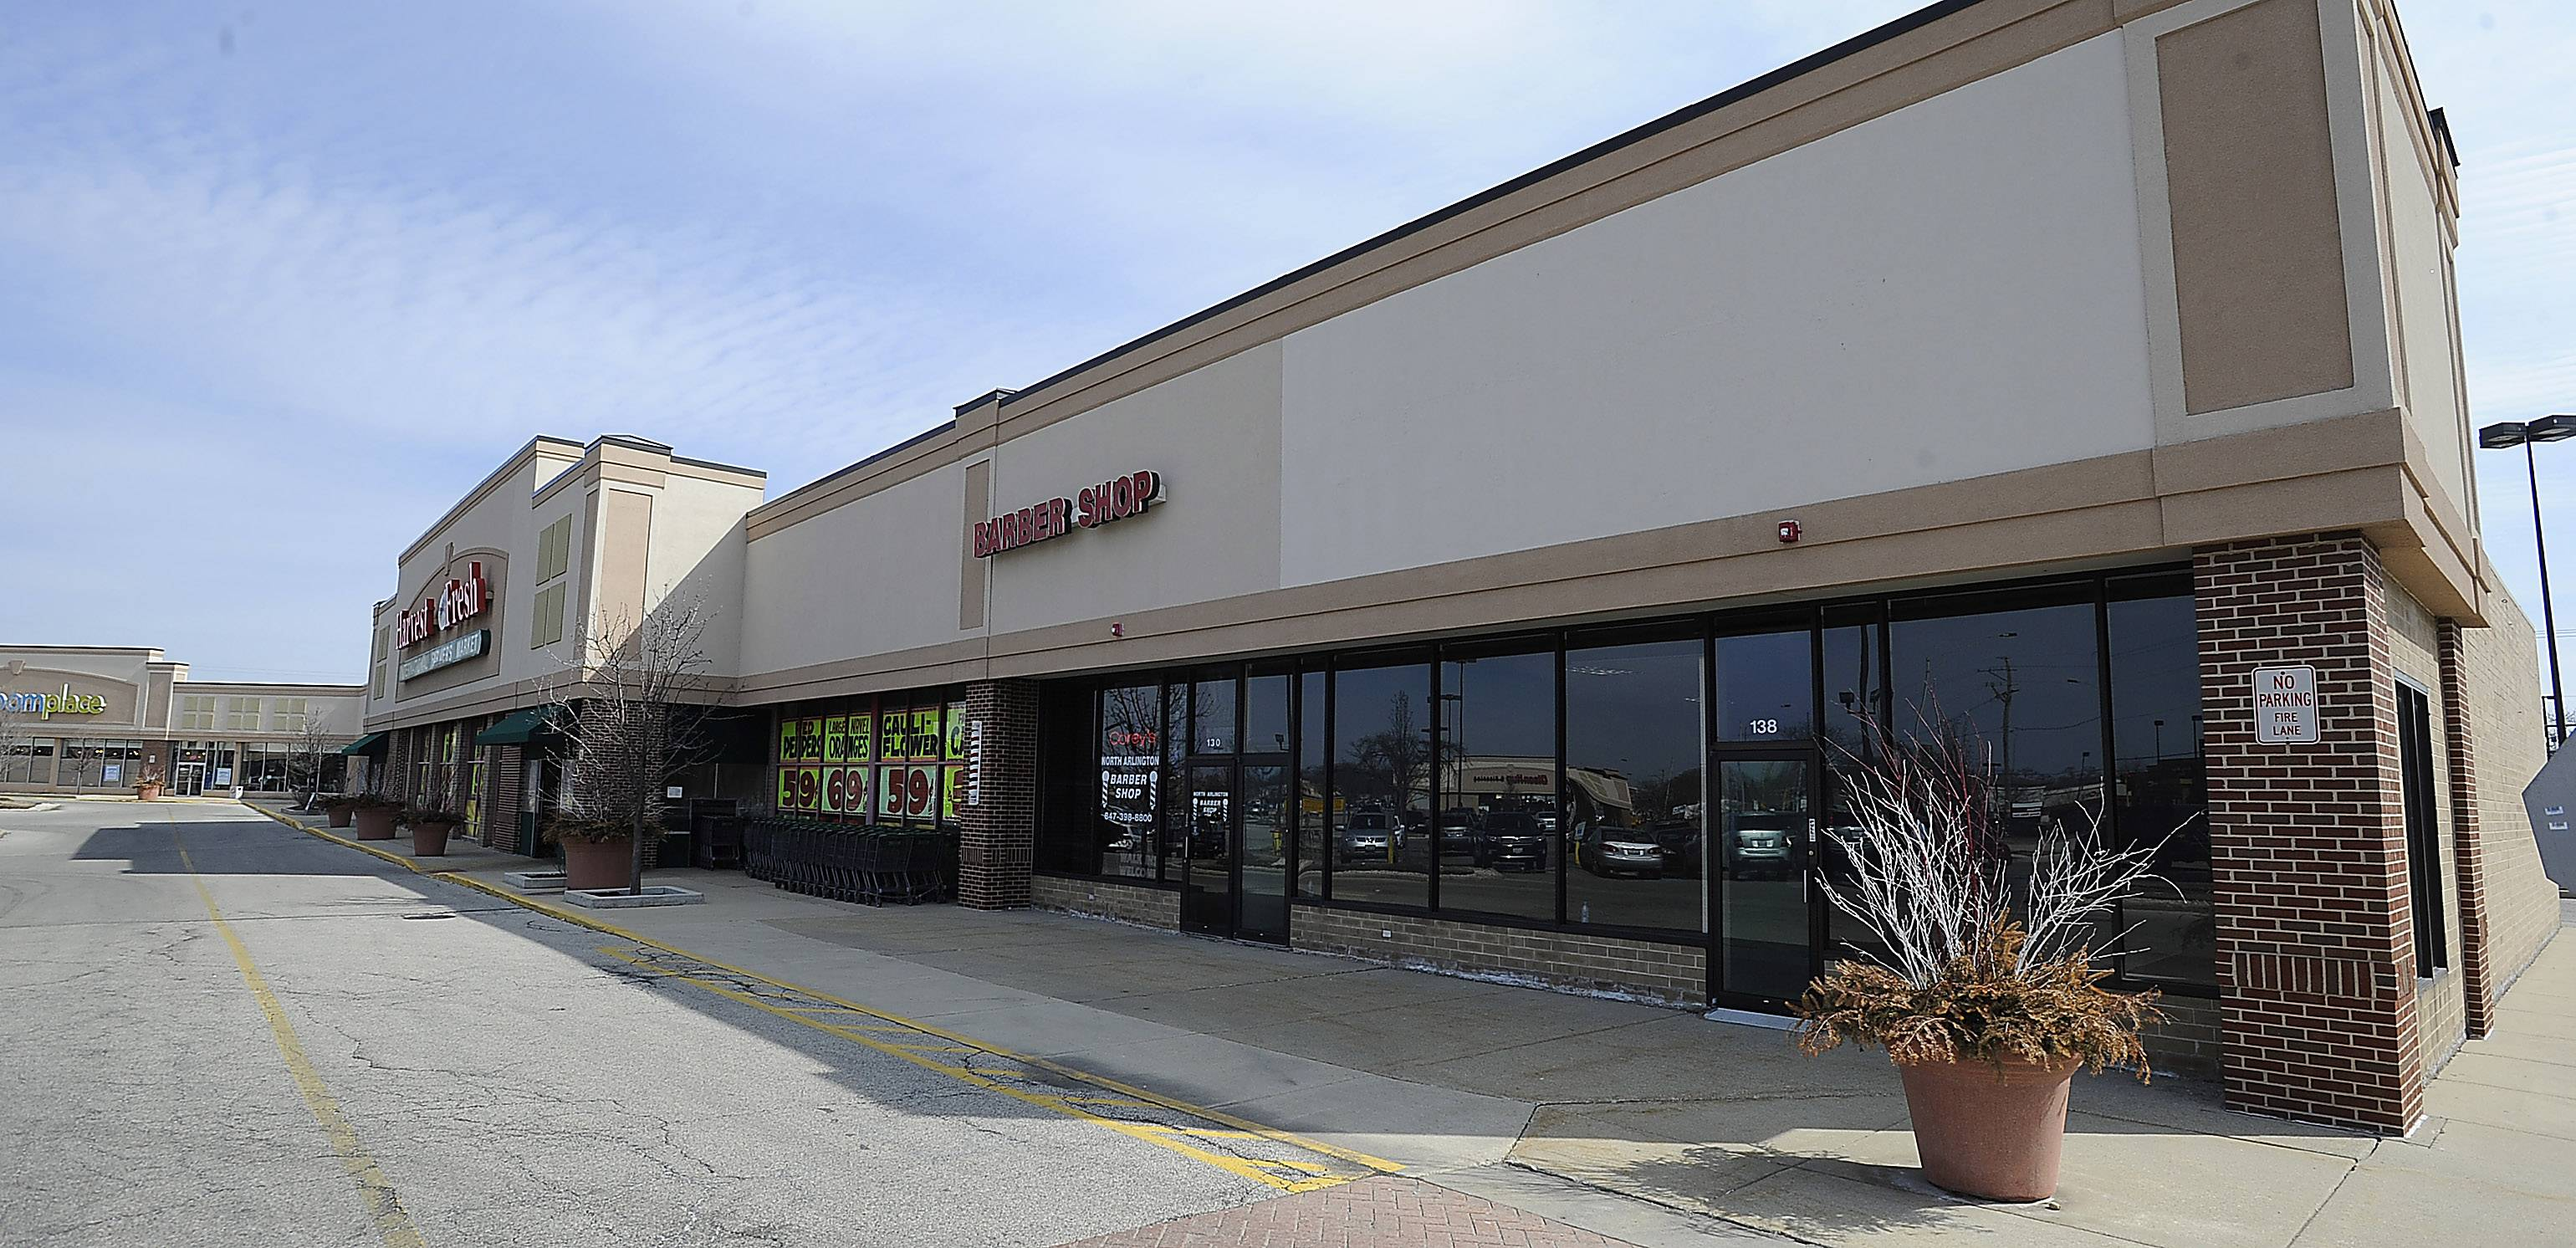 5th Avenue Sushi may soon open in a vacant space next to Harvest Fresh Market at Arlington Plaza in Arlington Heights.